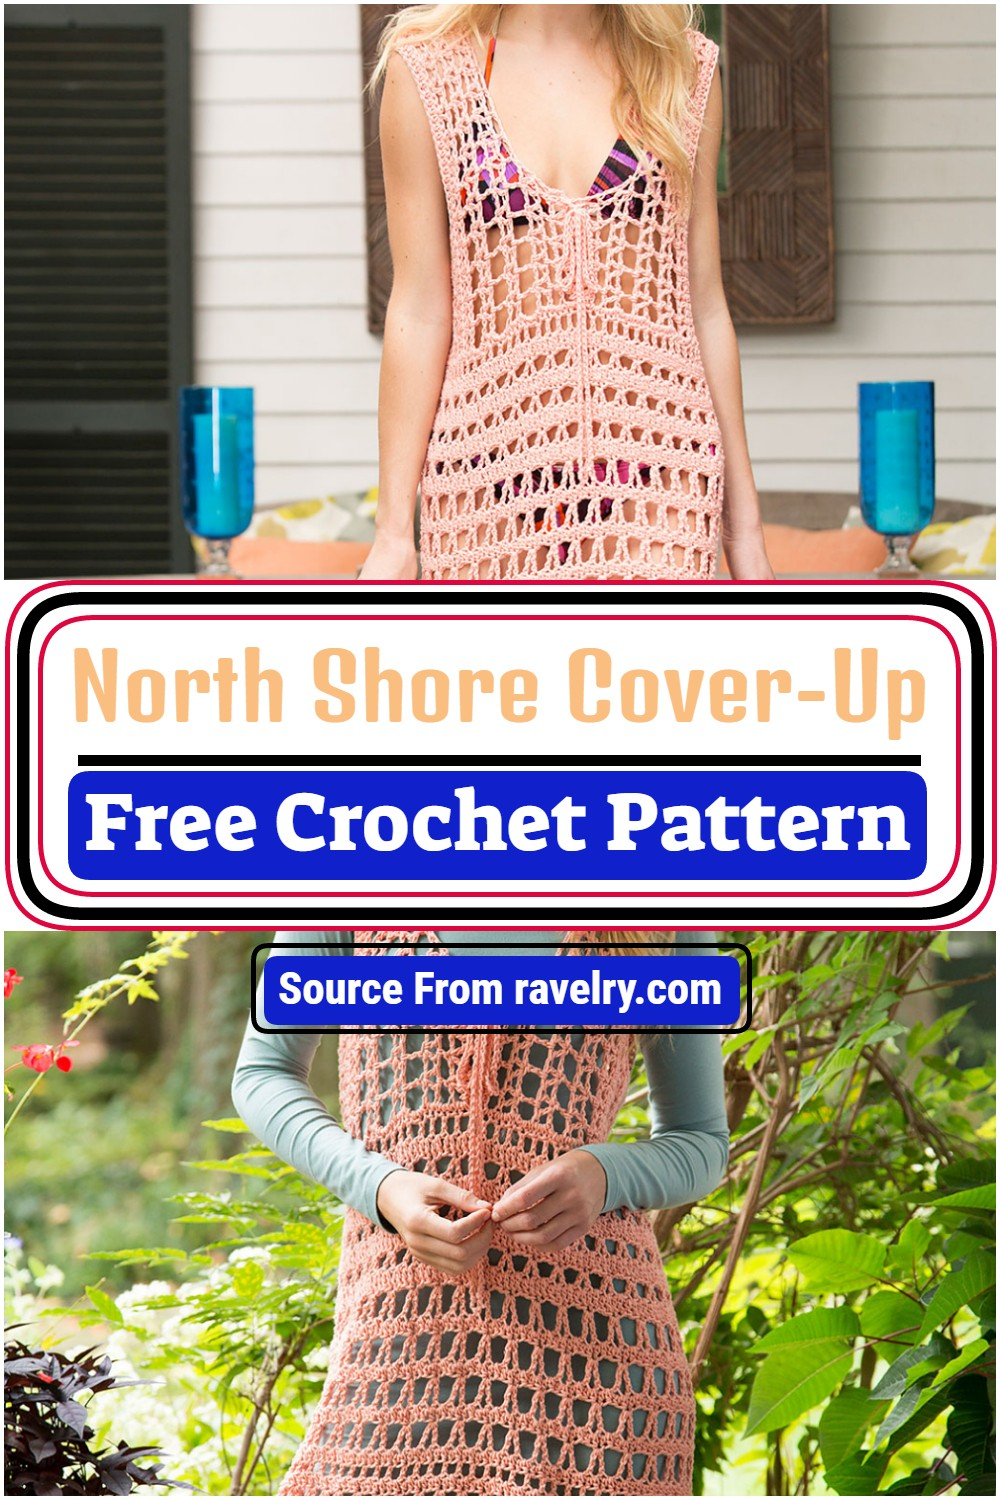 North Shore Crochet Cover-Up